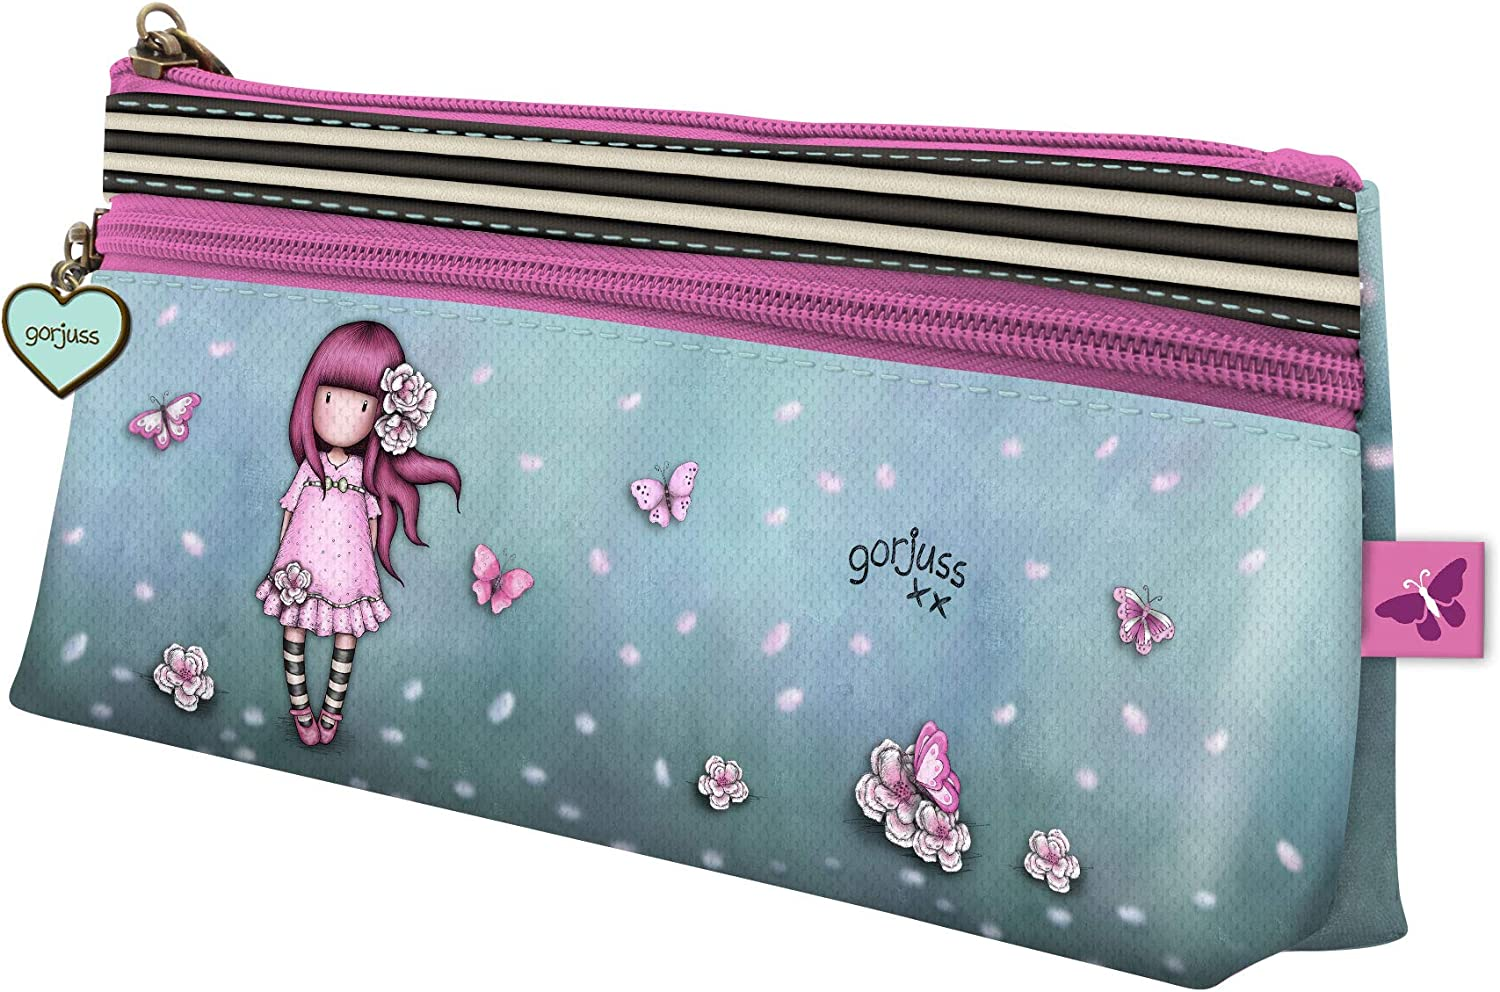 Gorjuss 776GJ05 Sparkle & Bloom - Estuche con cremallera: Amazon.es: Equipaje